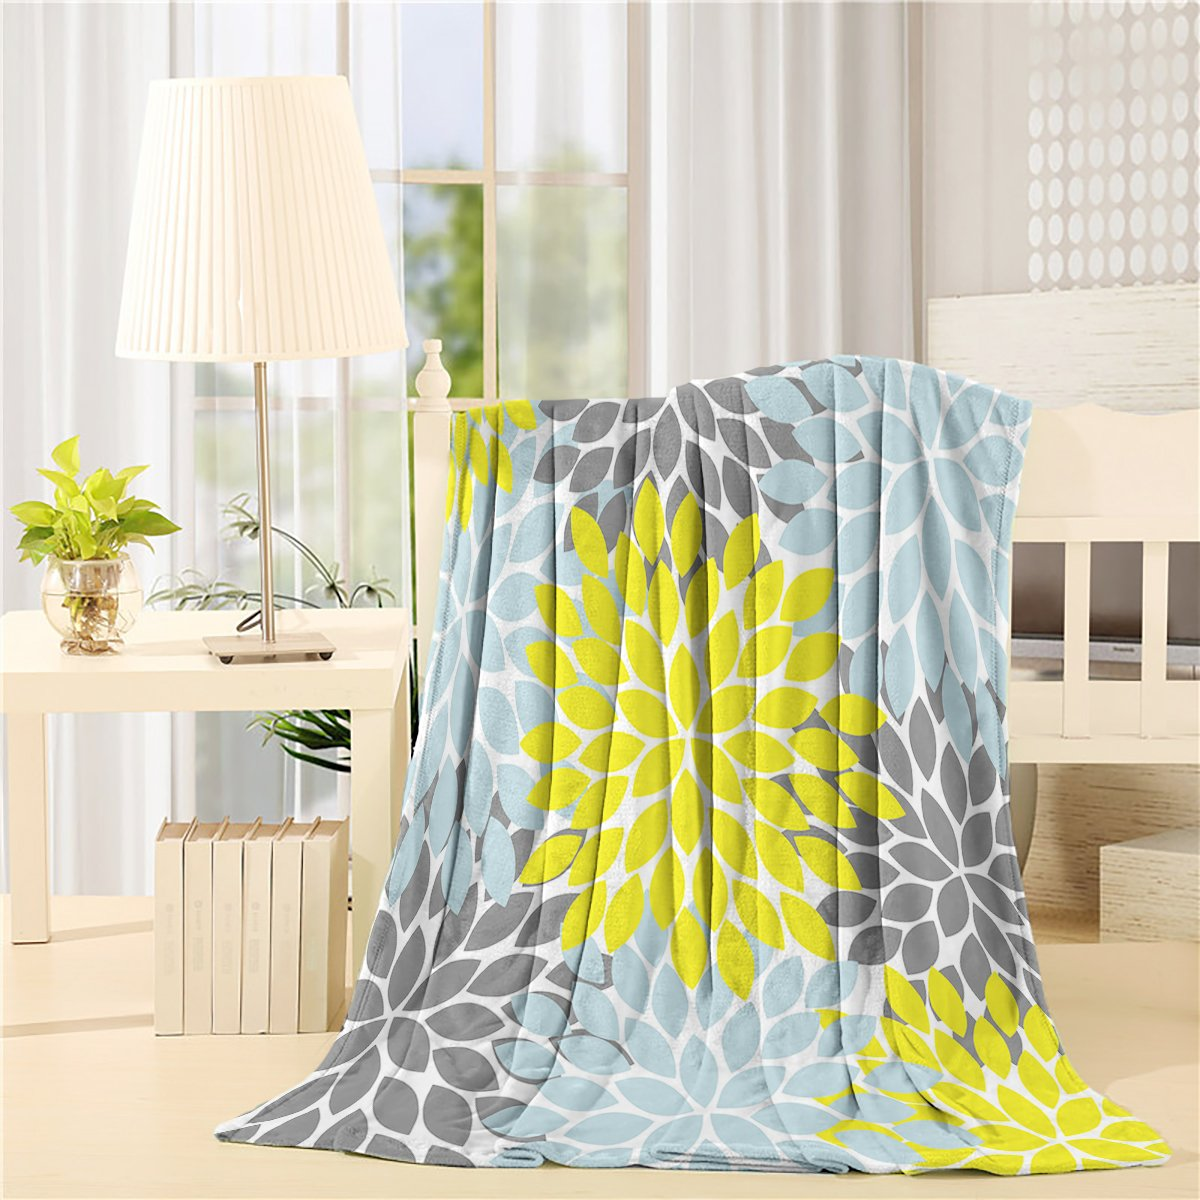 SUN-Shine Flannel Fleece Luxury Blanket Home Multicolor Dahlia Pinnata Flower Throw Lightweight Cozy Plush Microfiber Colorful Blanket 50x60Inches Yellow, Blue, Grey